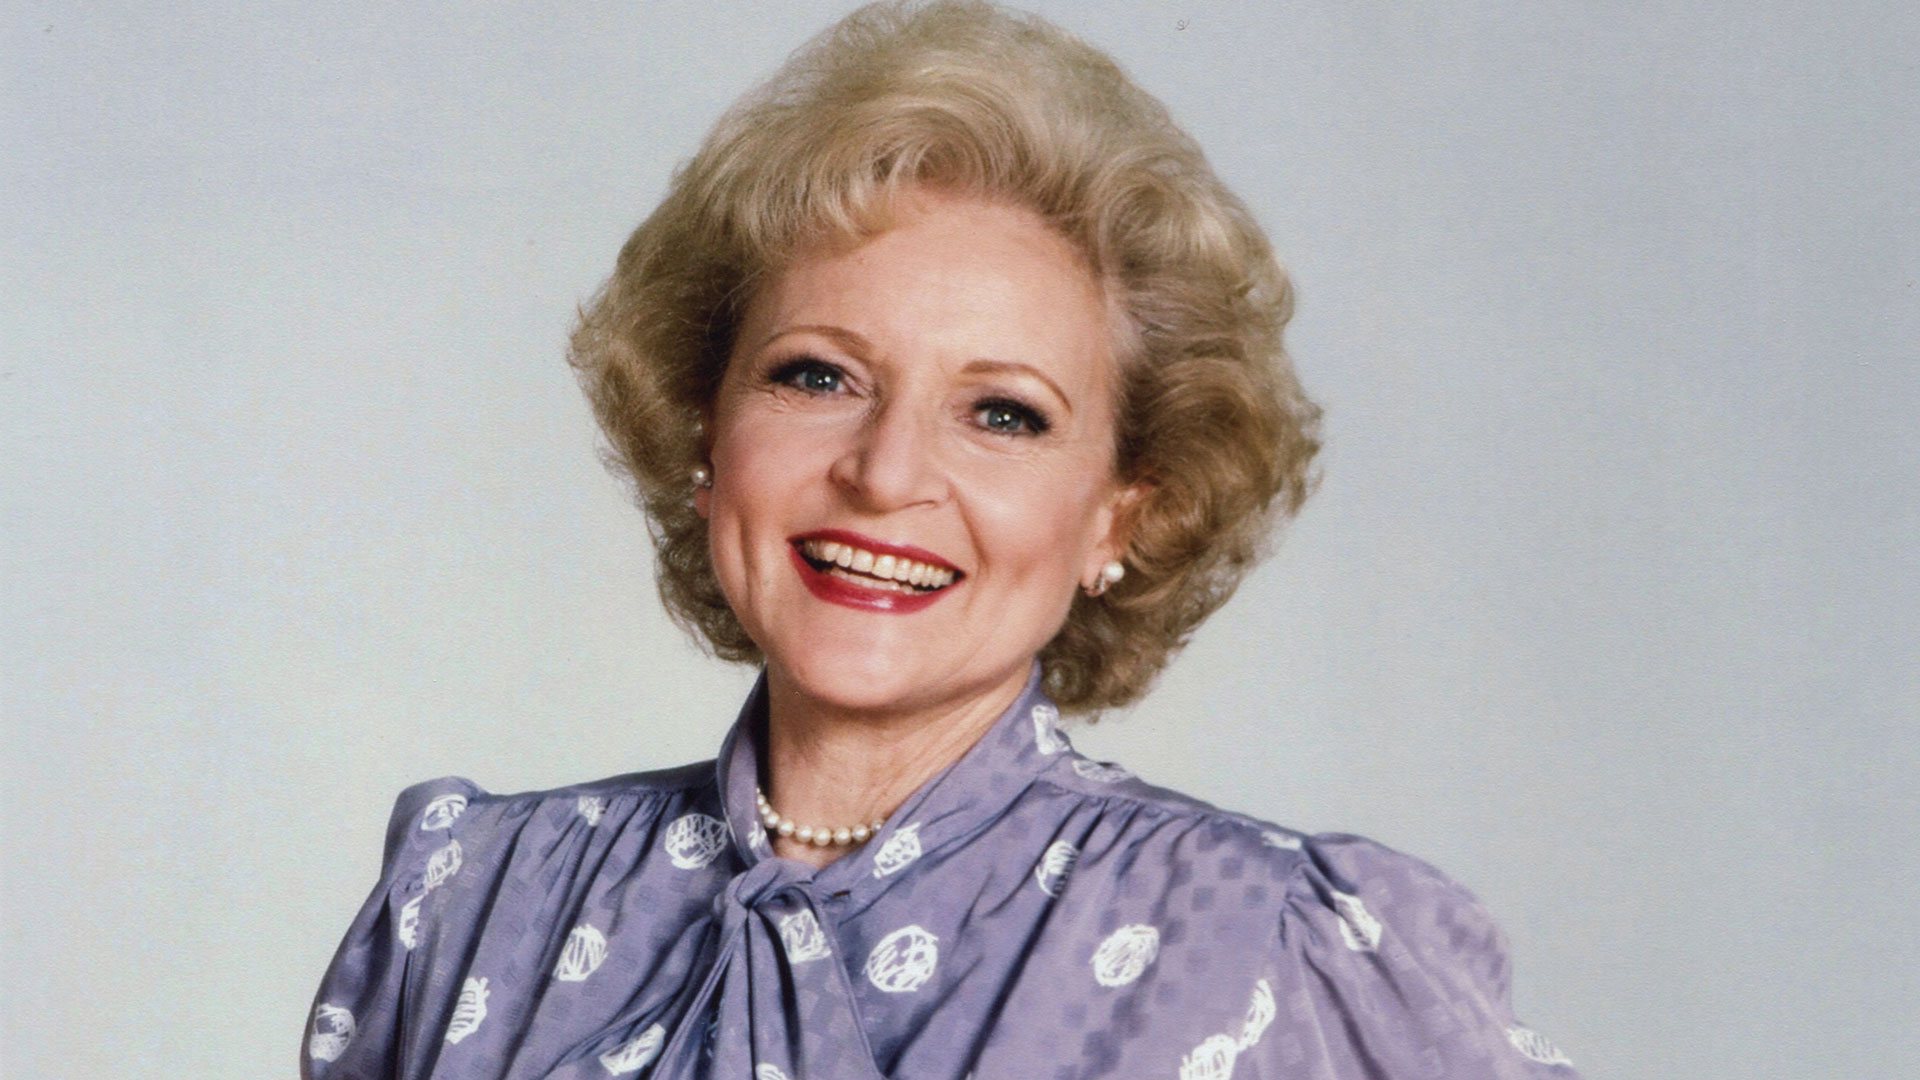 Betty White - First Lady of Television